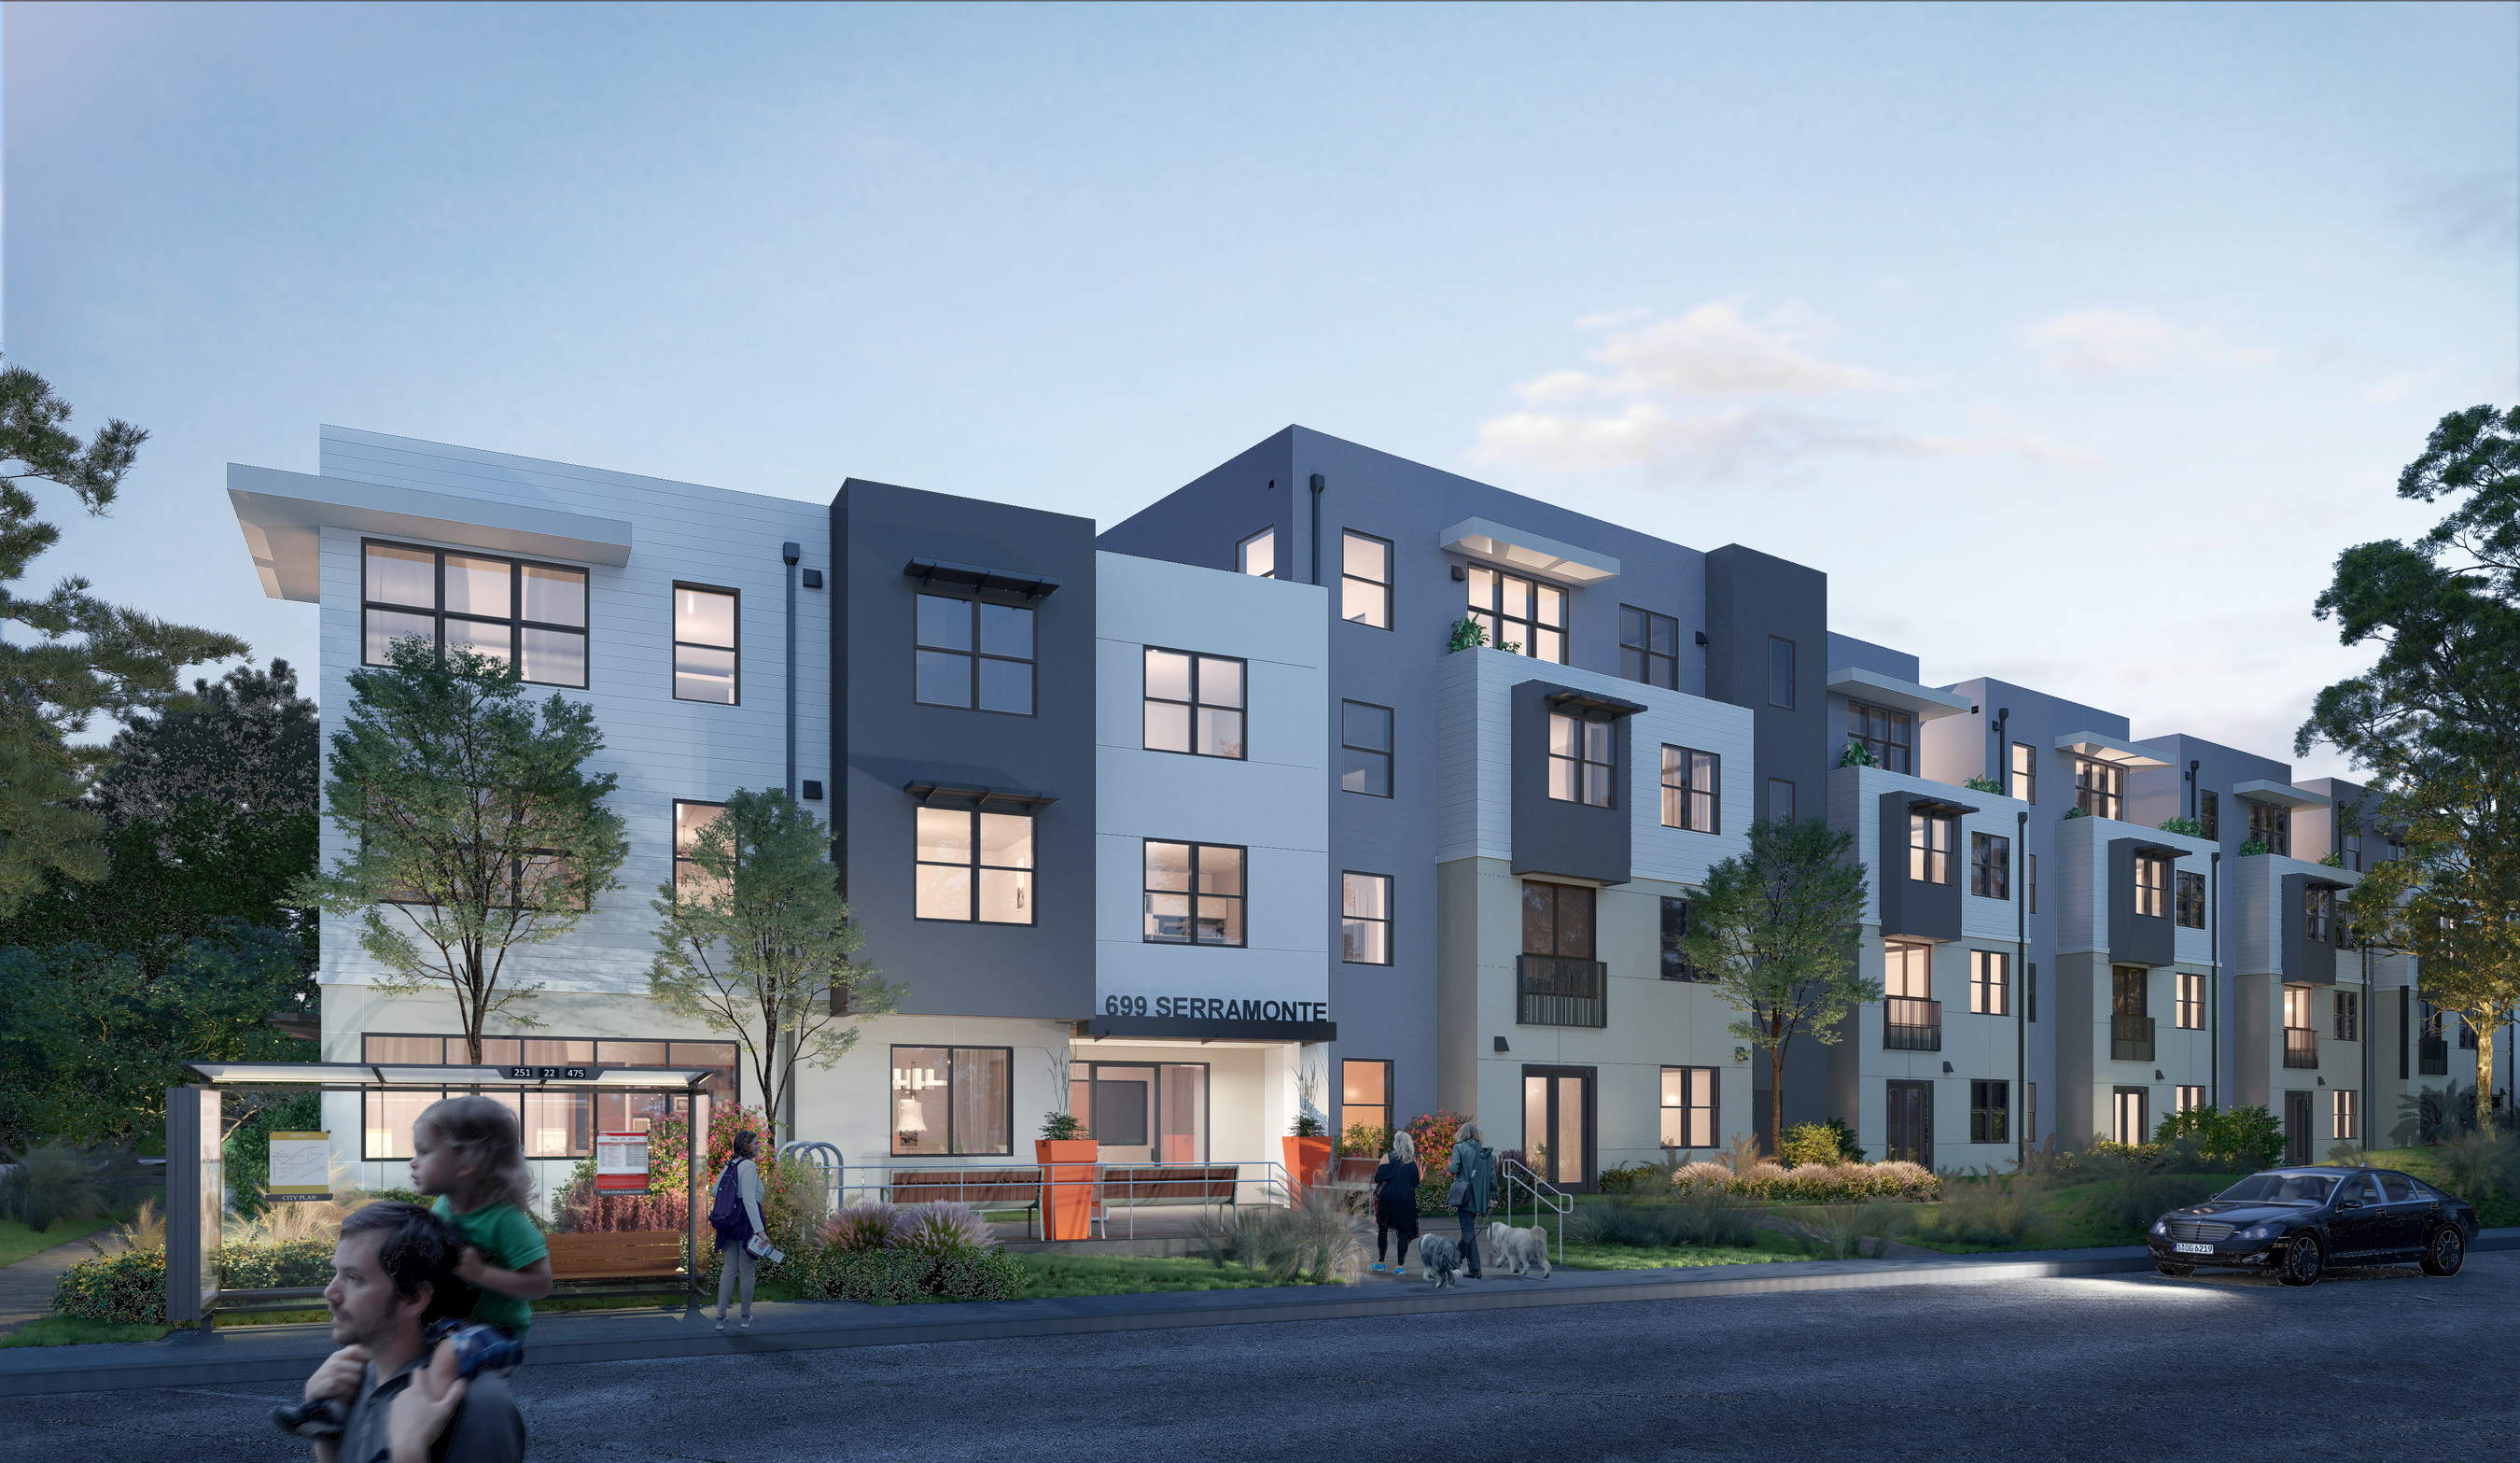 Jefferson Union High School District Faculty and Staff Housing Community Breaks Ground in Daly City, California